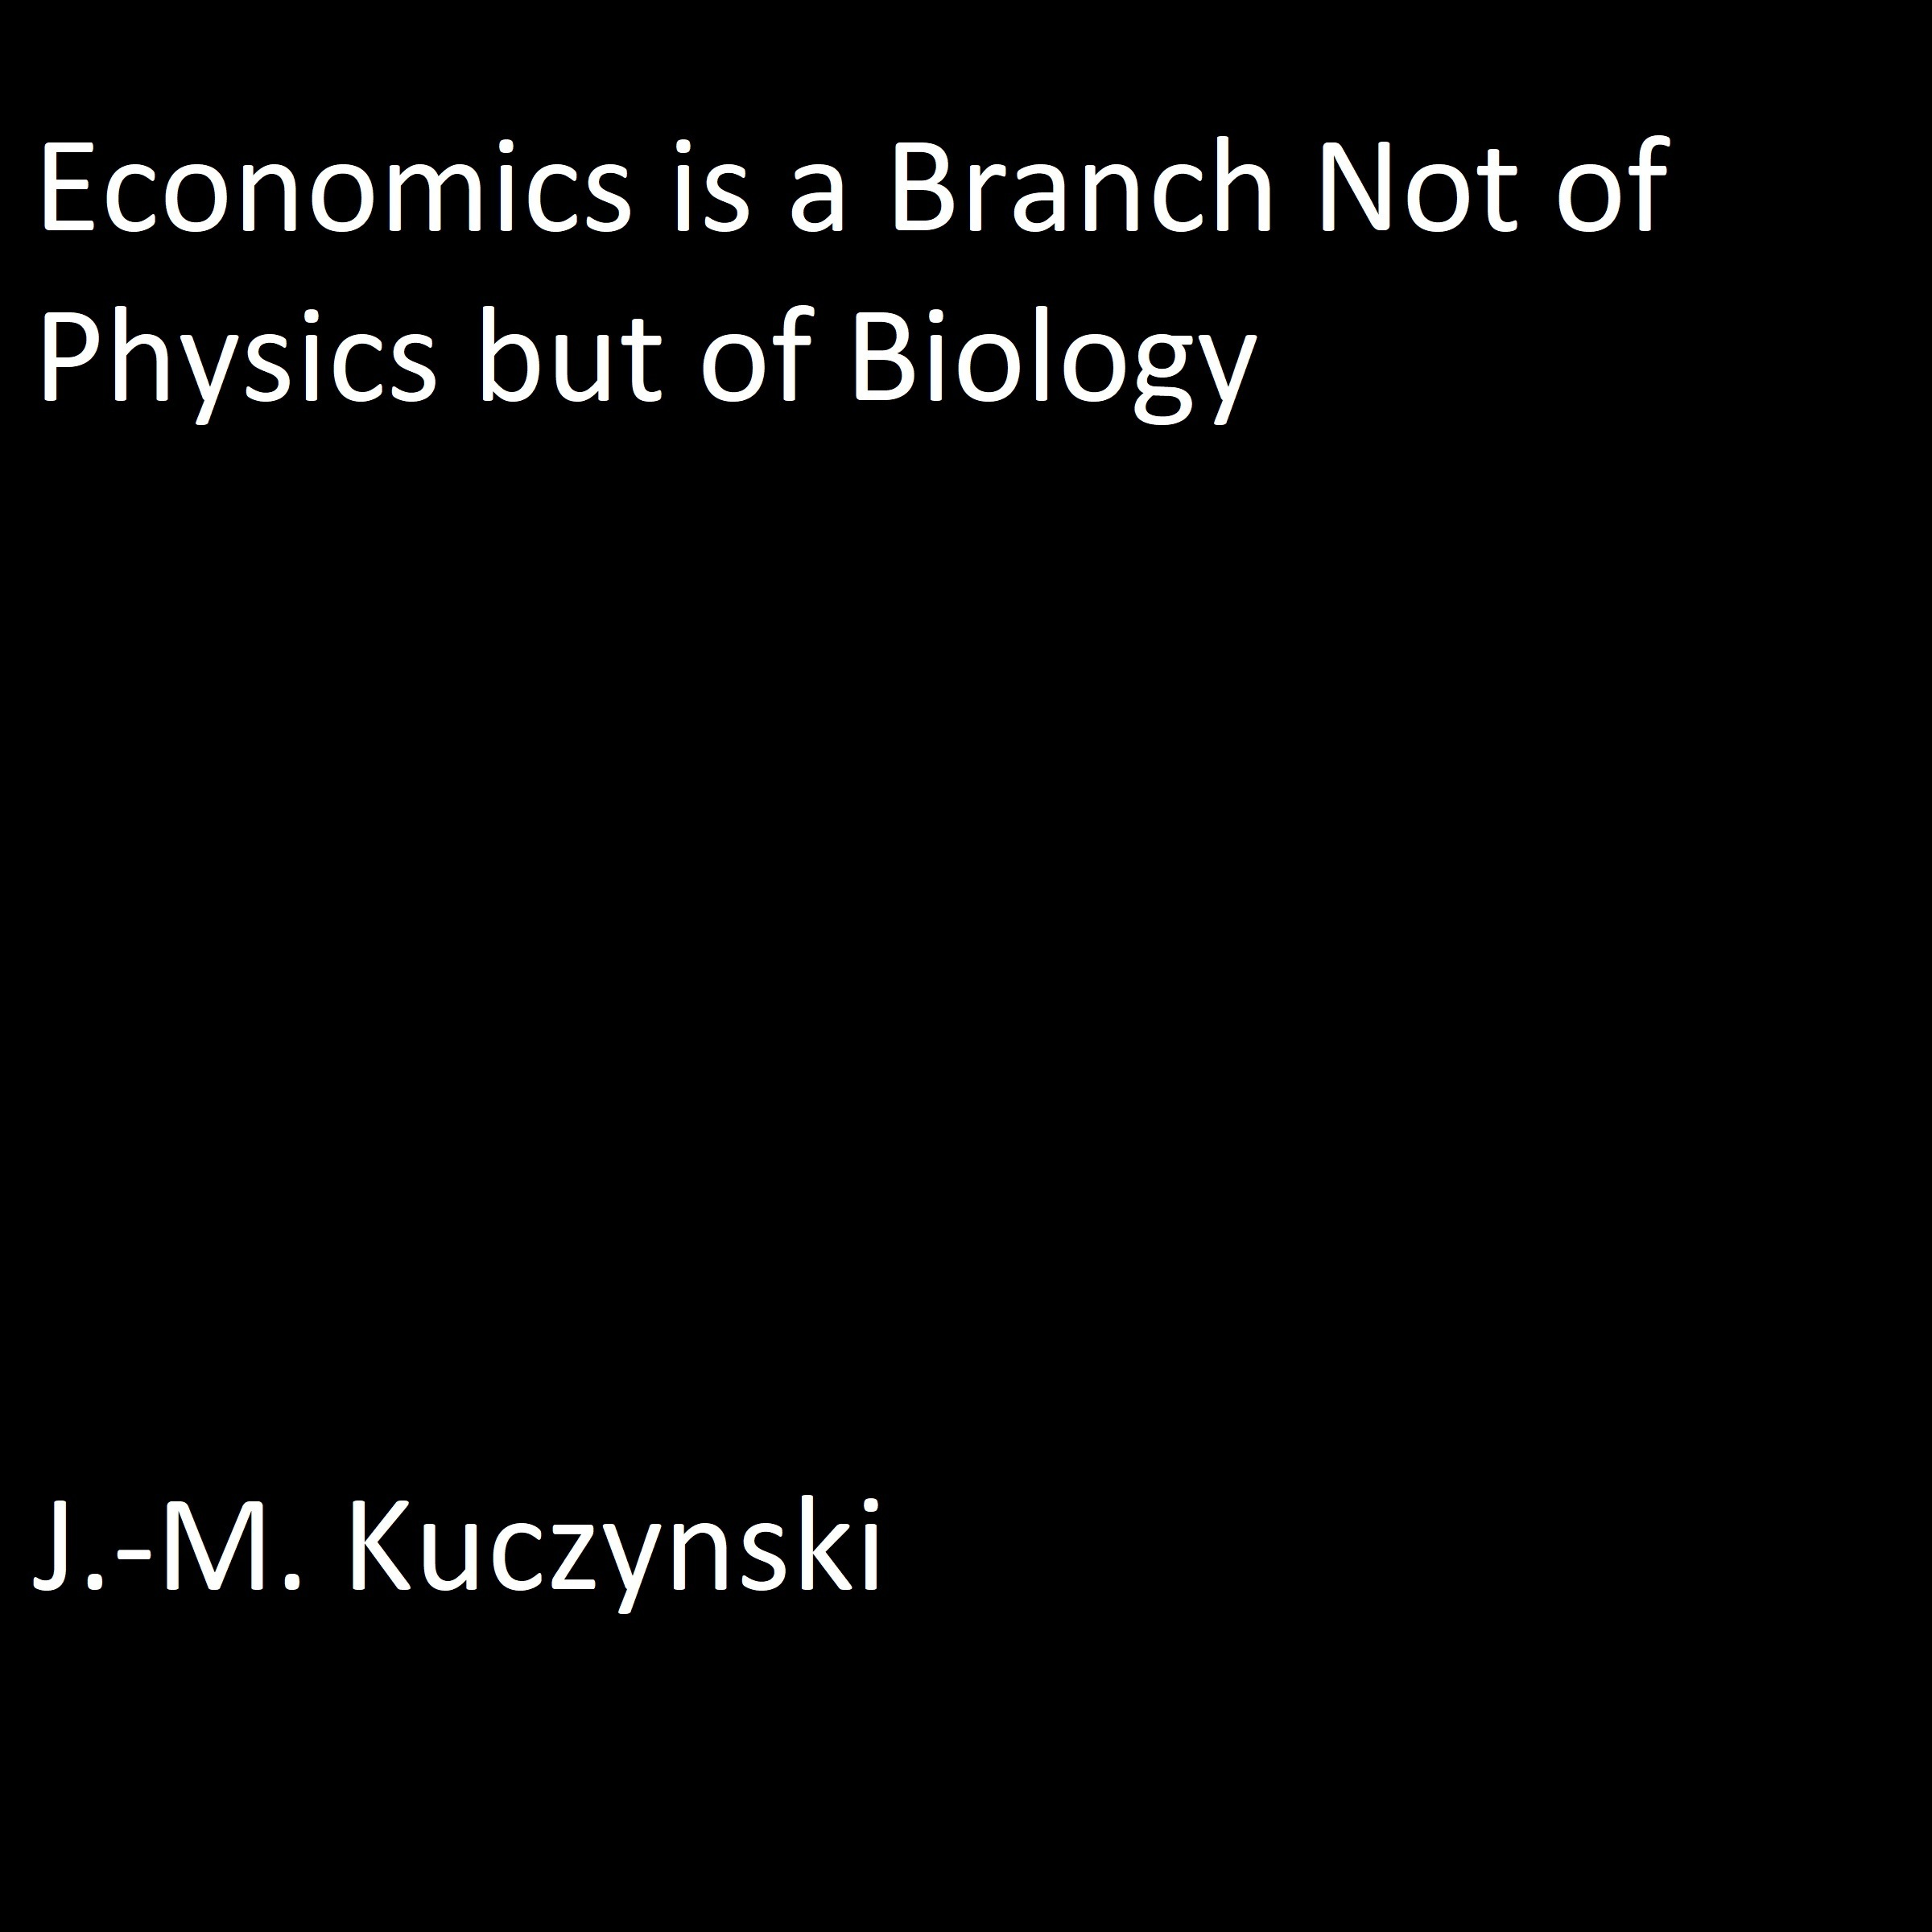 Printable Economics is a Branch not of Physics but of Biology  Audiobook Cover Art